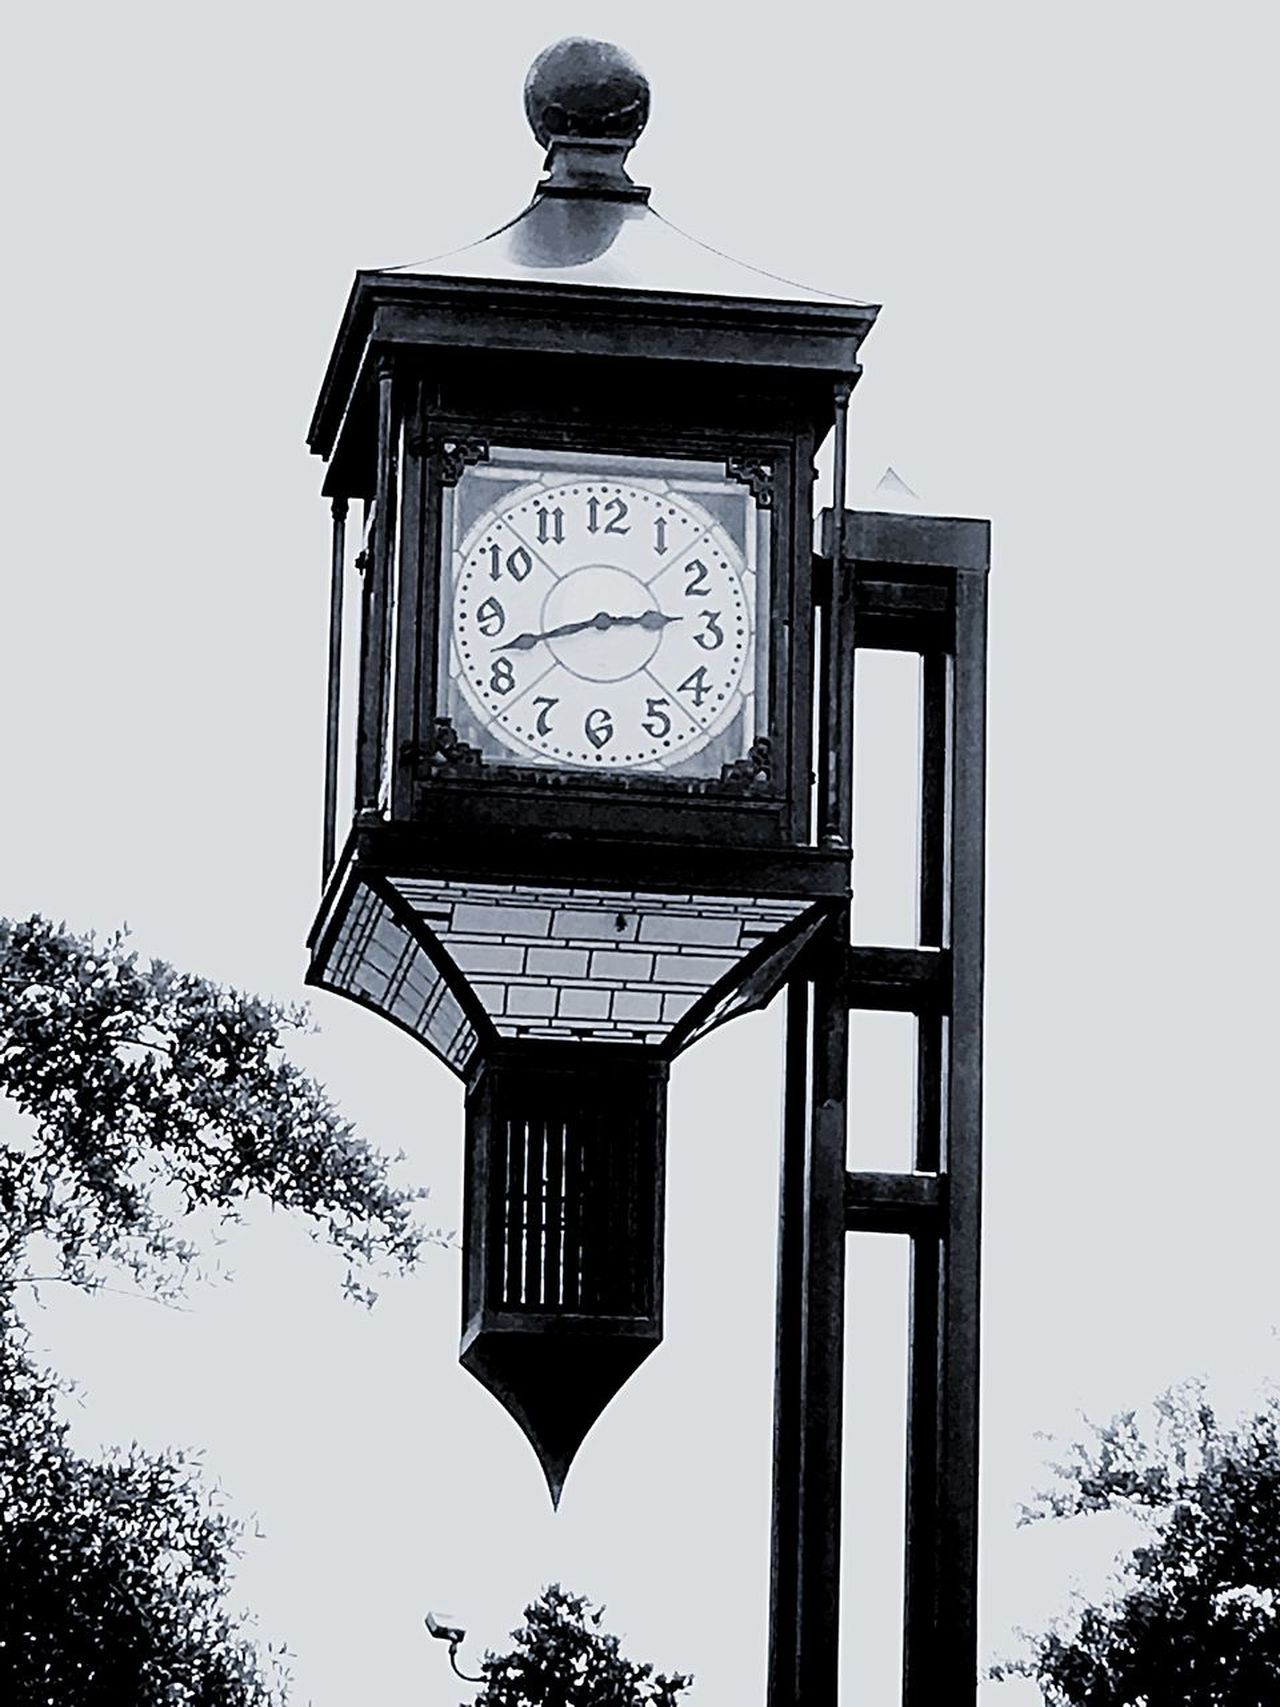 Once Upon A Time I Thought Time Was On My Side. But Now That I'm Older I've Realized Time Is Short! Black And White